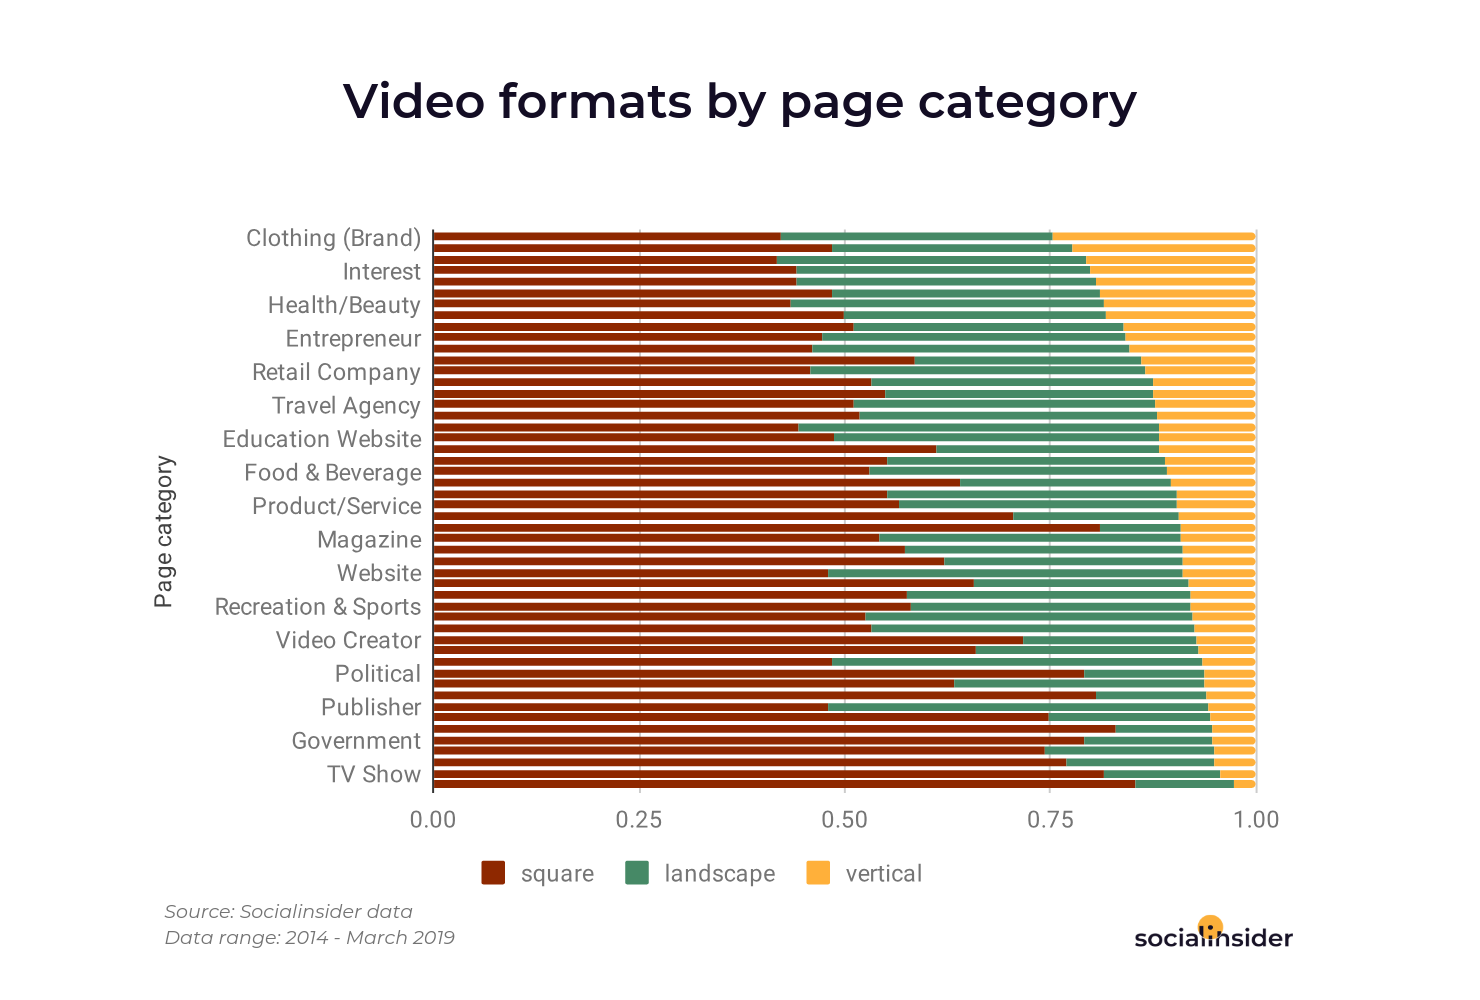 Top Facebook pages categories that are creating vertical videos